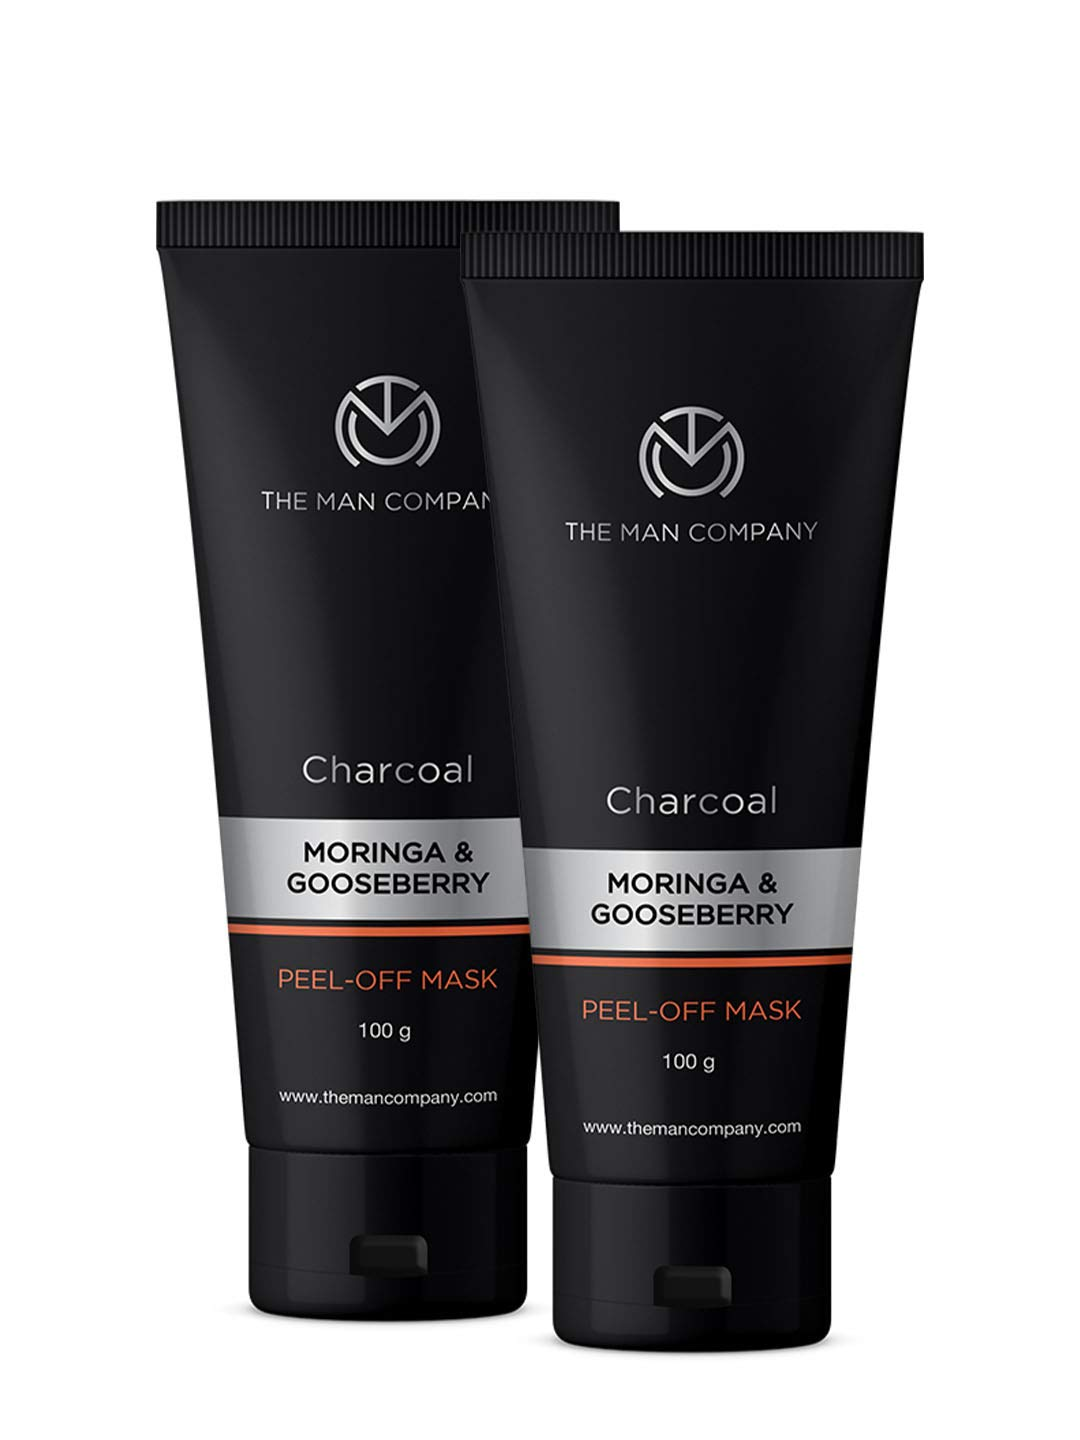 Buy The Man Company Activated Charcoal Peel Off Mask Dead Skin And Blackheads Removal Face Mask 2x100g Charcoal Moringa And Gooseberry Made In India Online At Low Prices In India